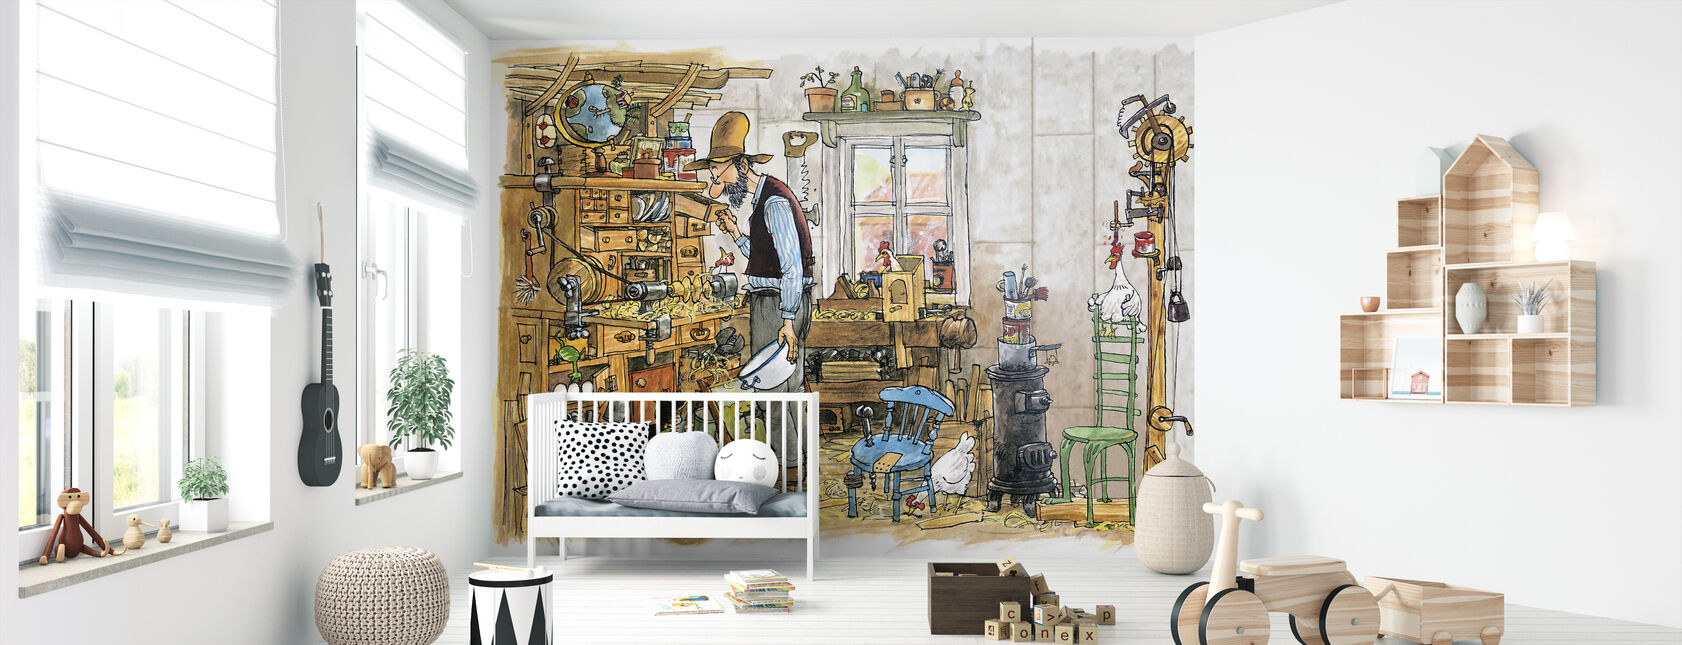 The carpenter - Wallpaper - Nursery